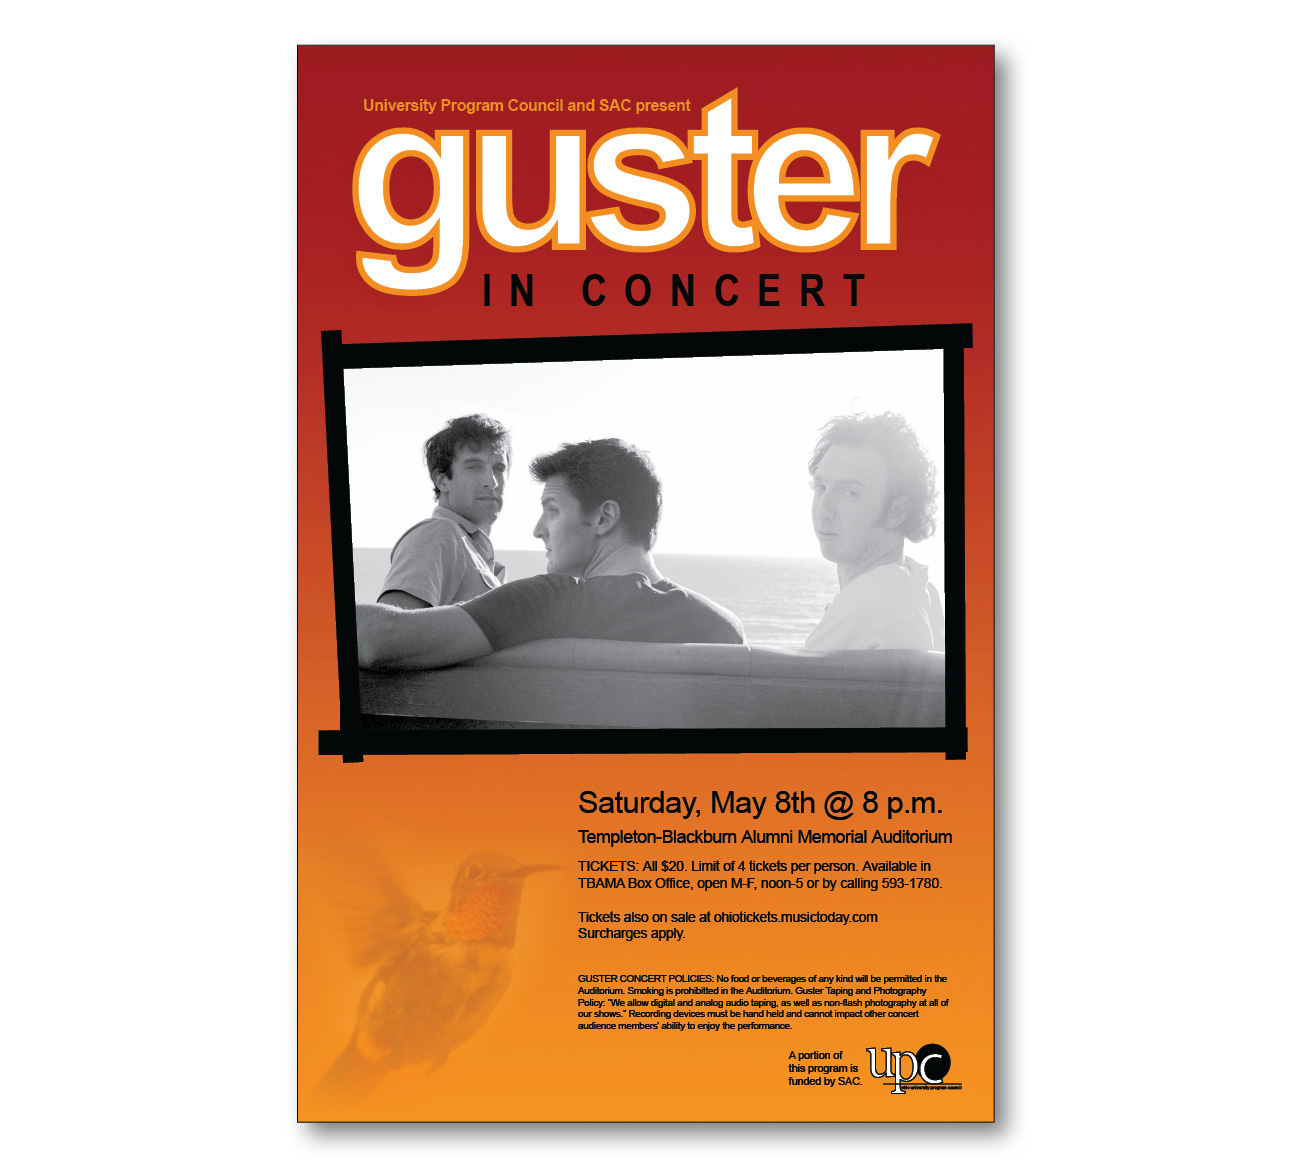 Tour 2011 Guster Dates